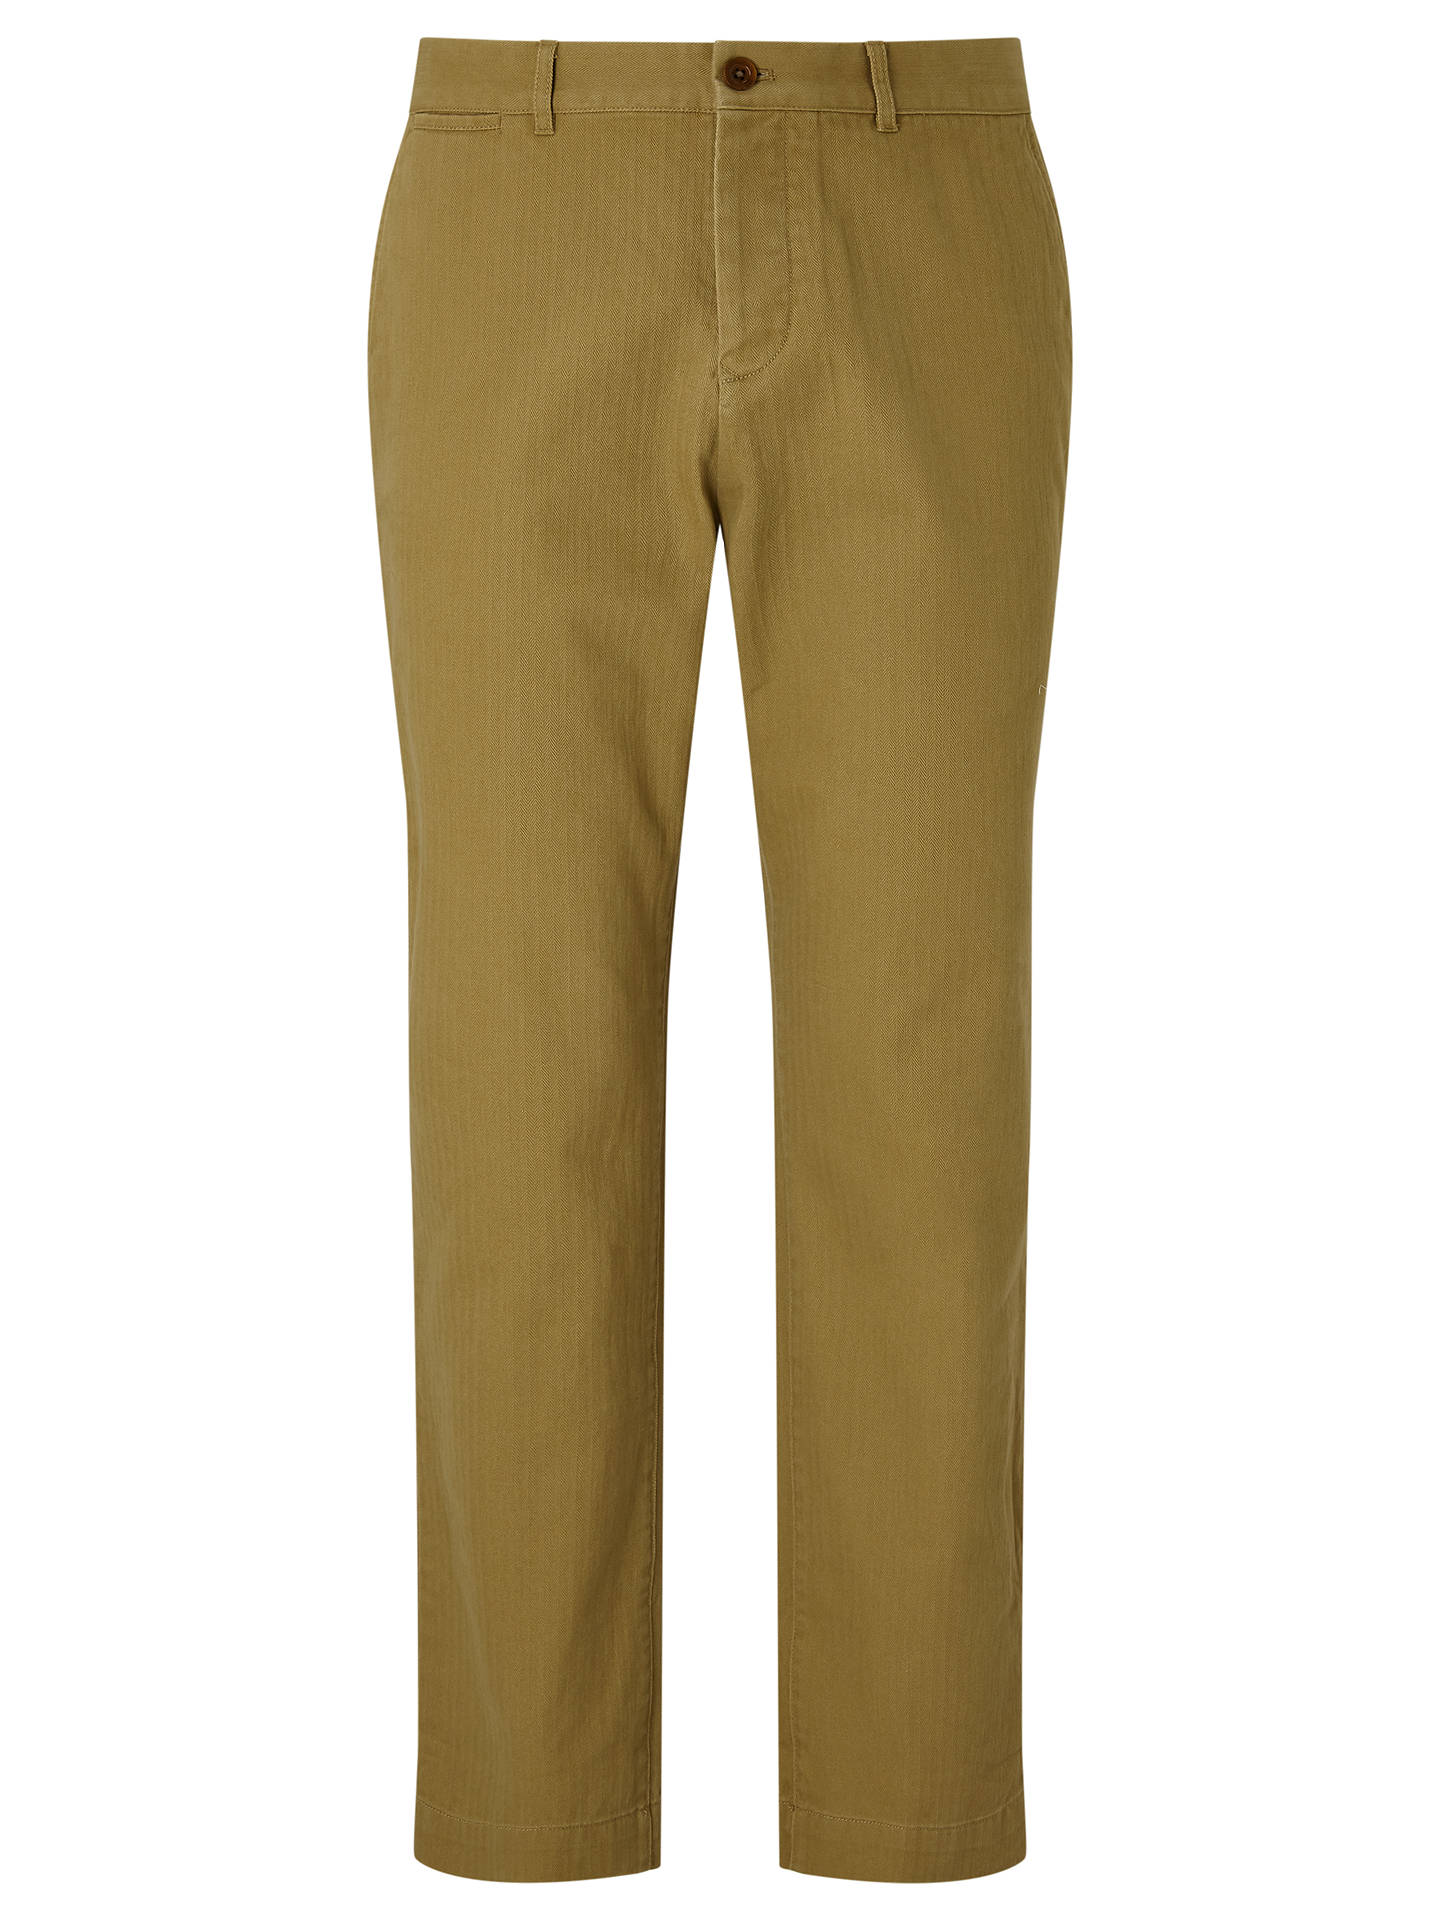 Buy JOHN LEWIS & Co. Oliver Herringbone Chino Trousers, Stone, 32S Online at johnlewis.com